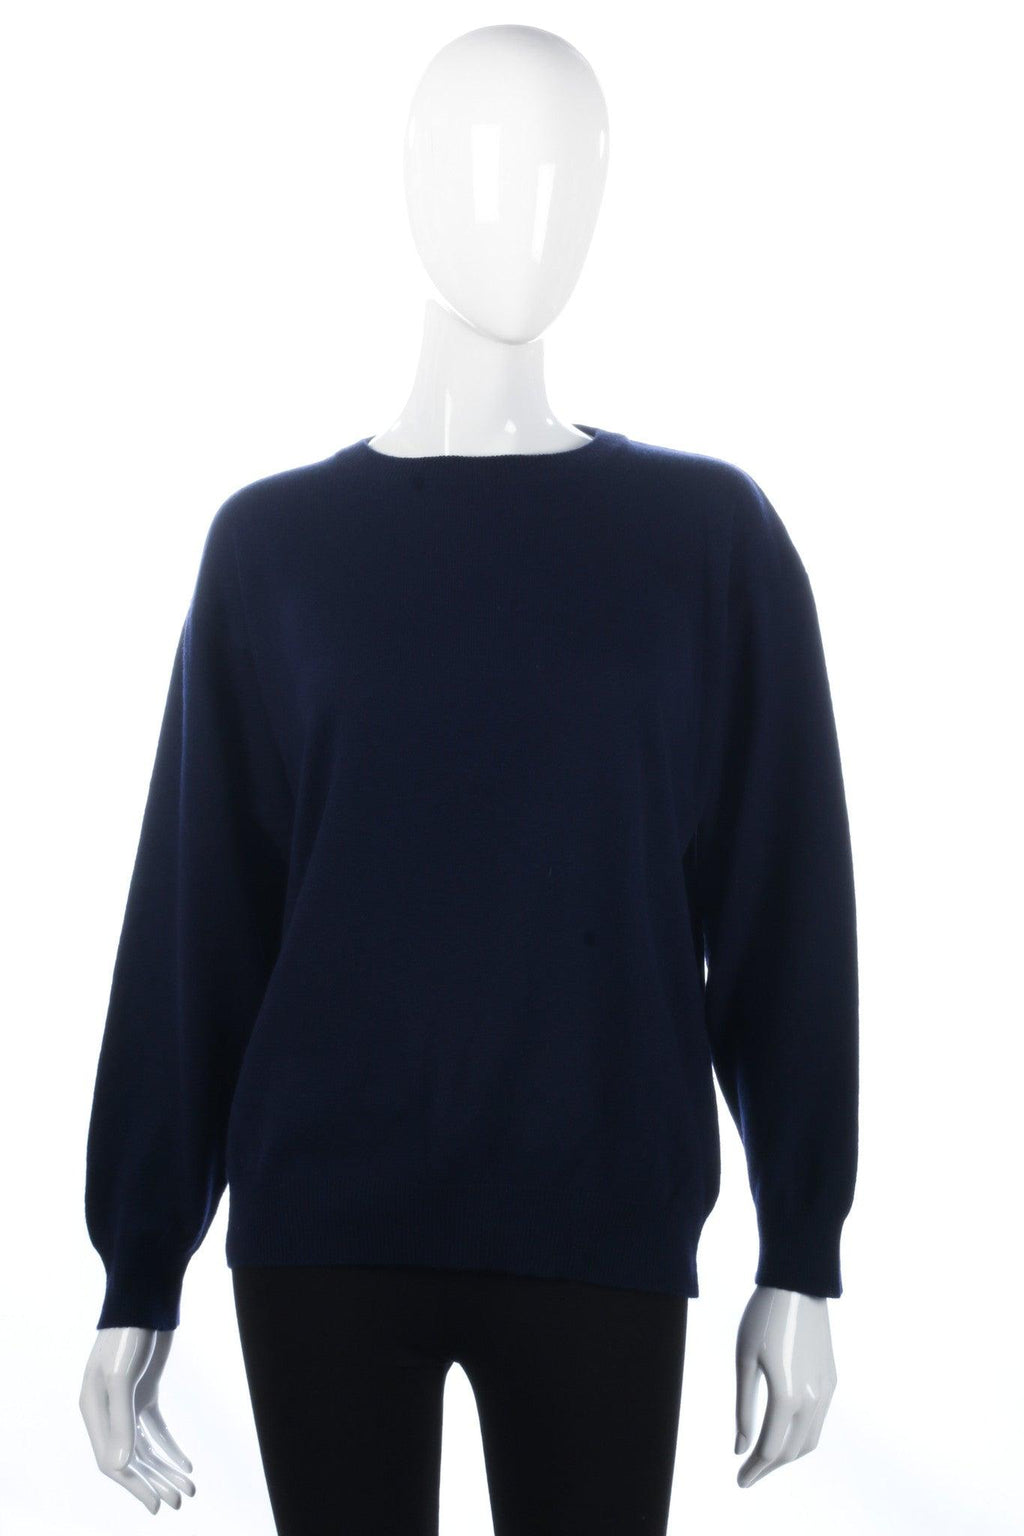 Compliments dark blue jumper size L